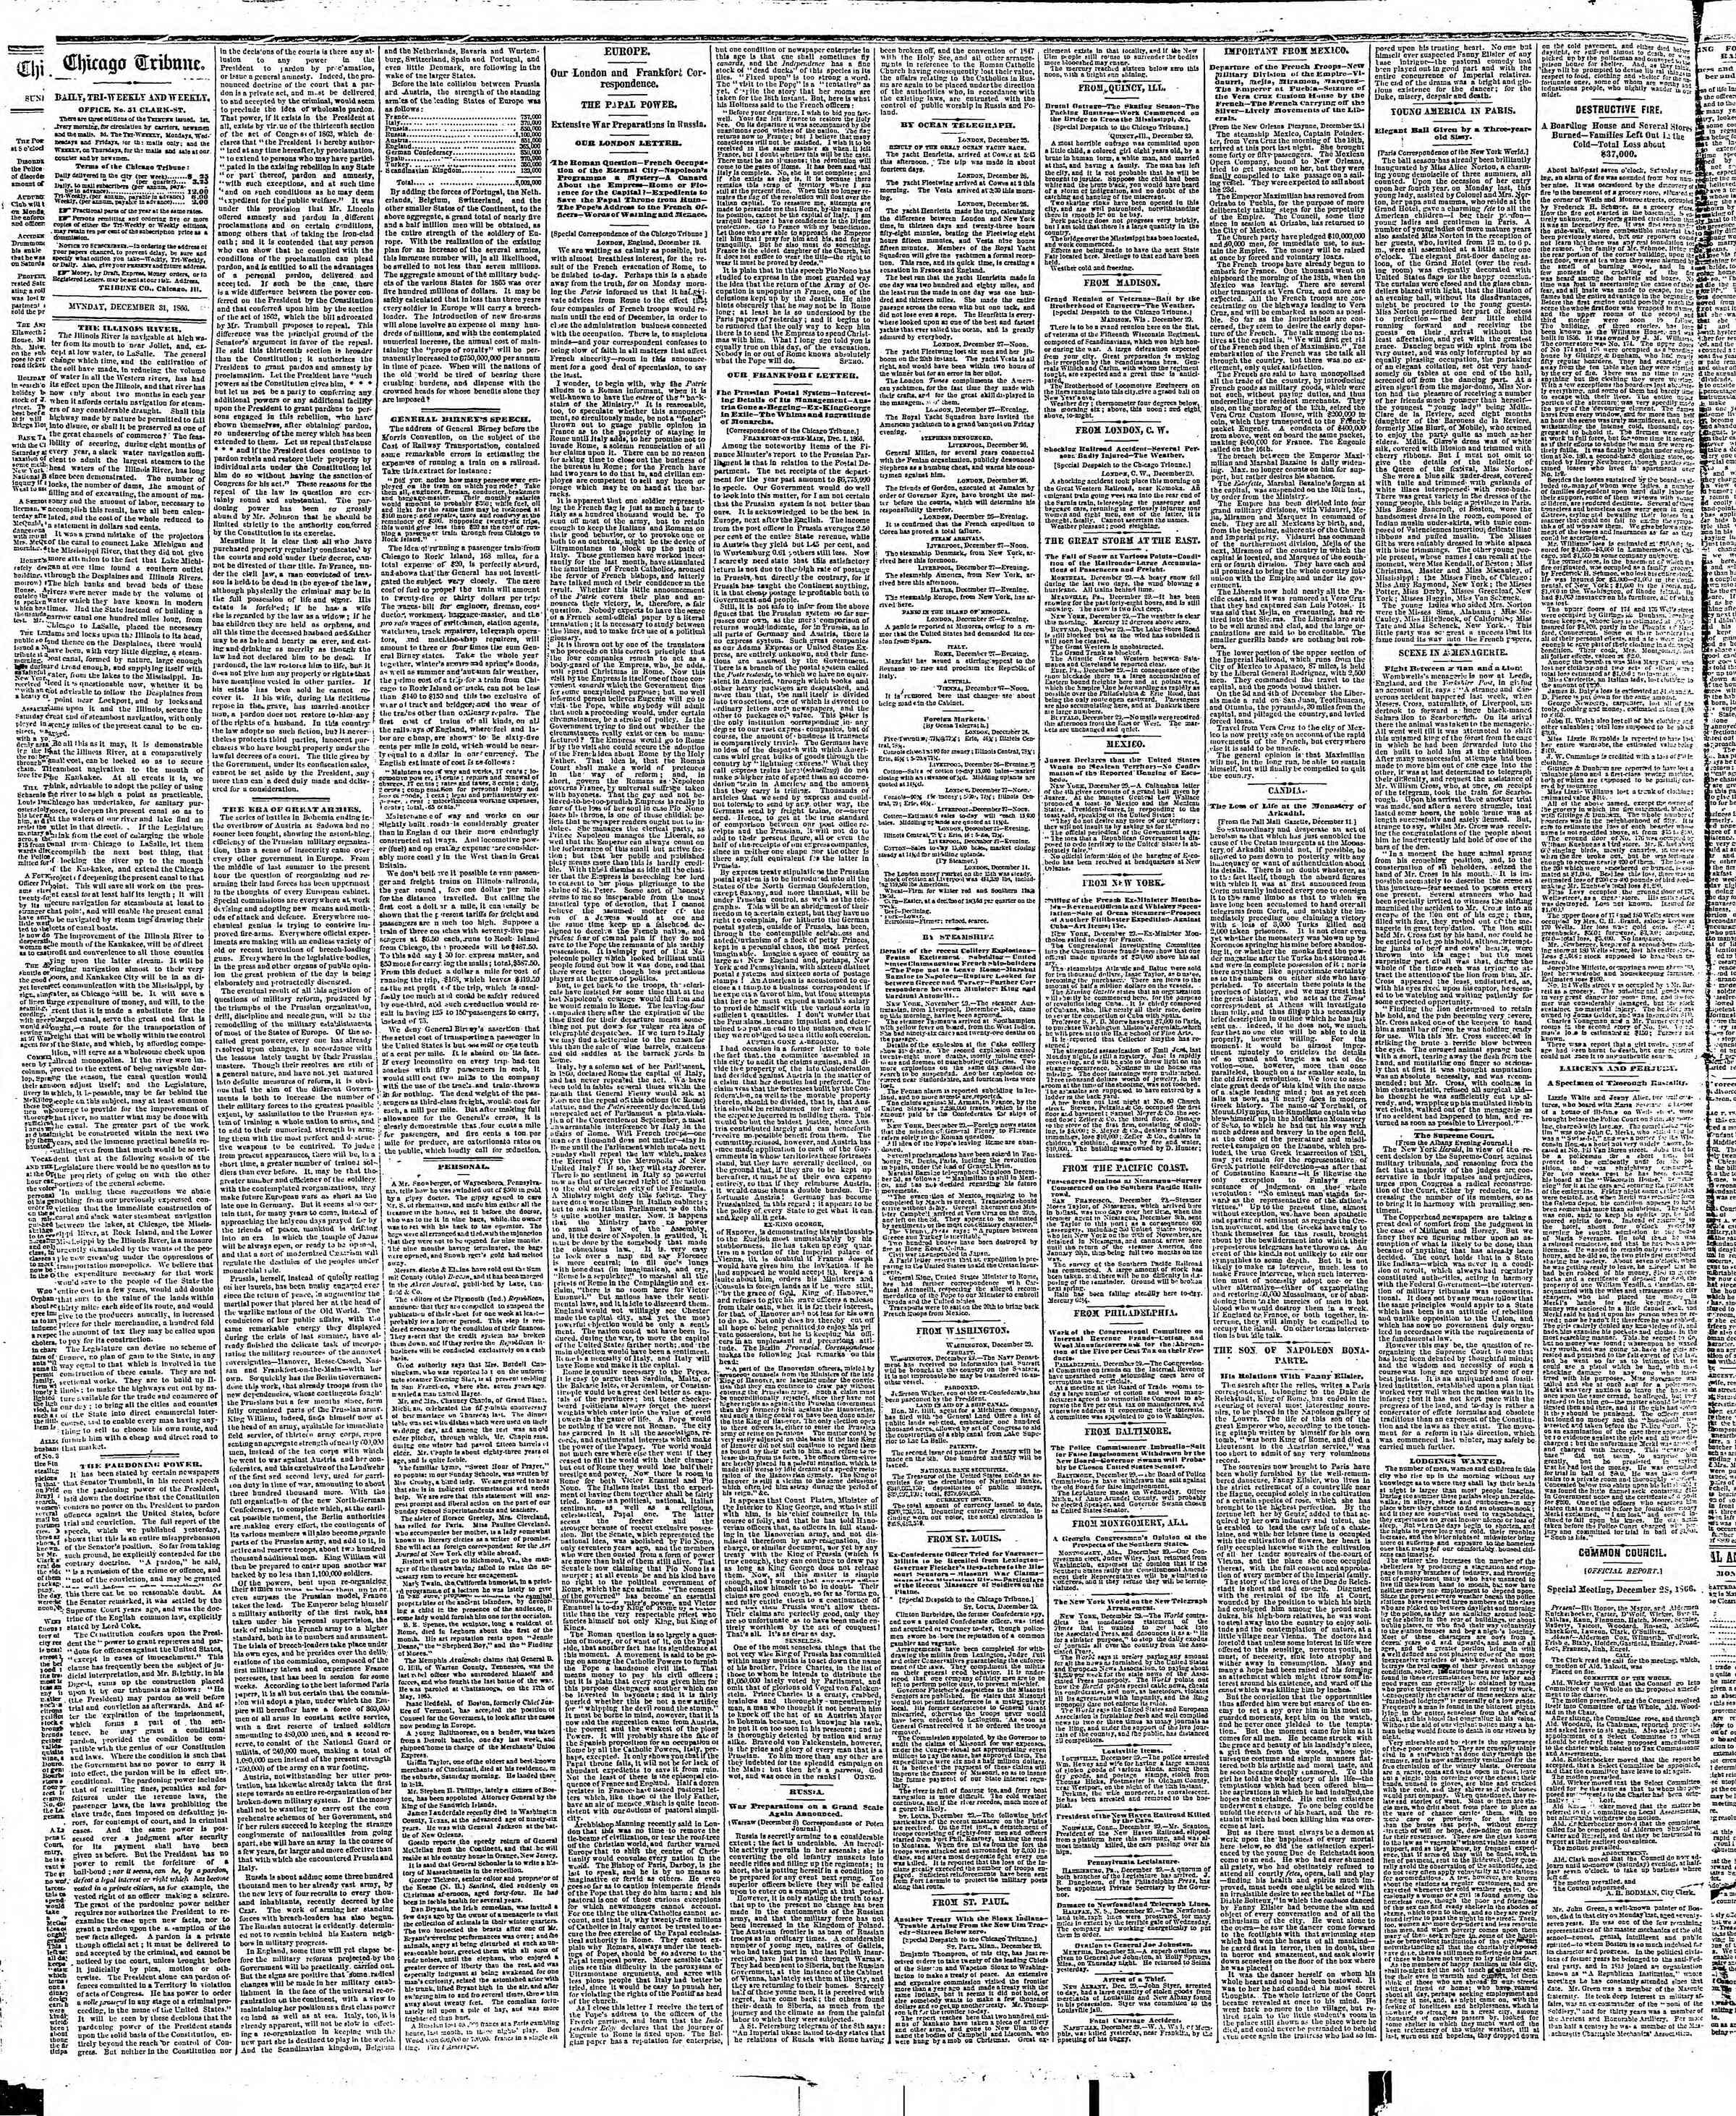 Newspaper of The Chicago Tribune dated December 31, 1866 Page 2